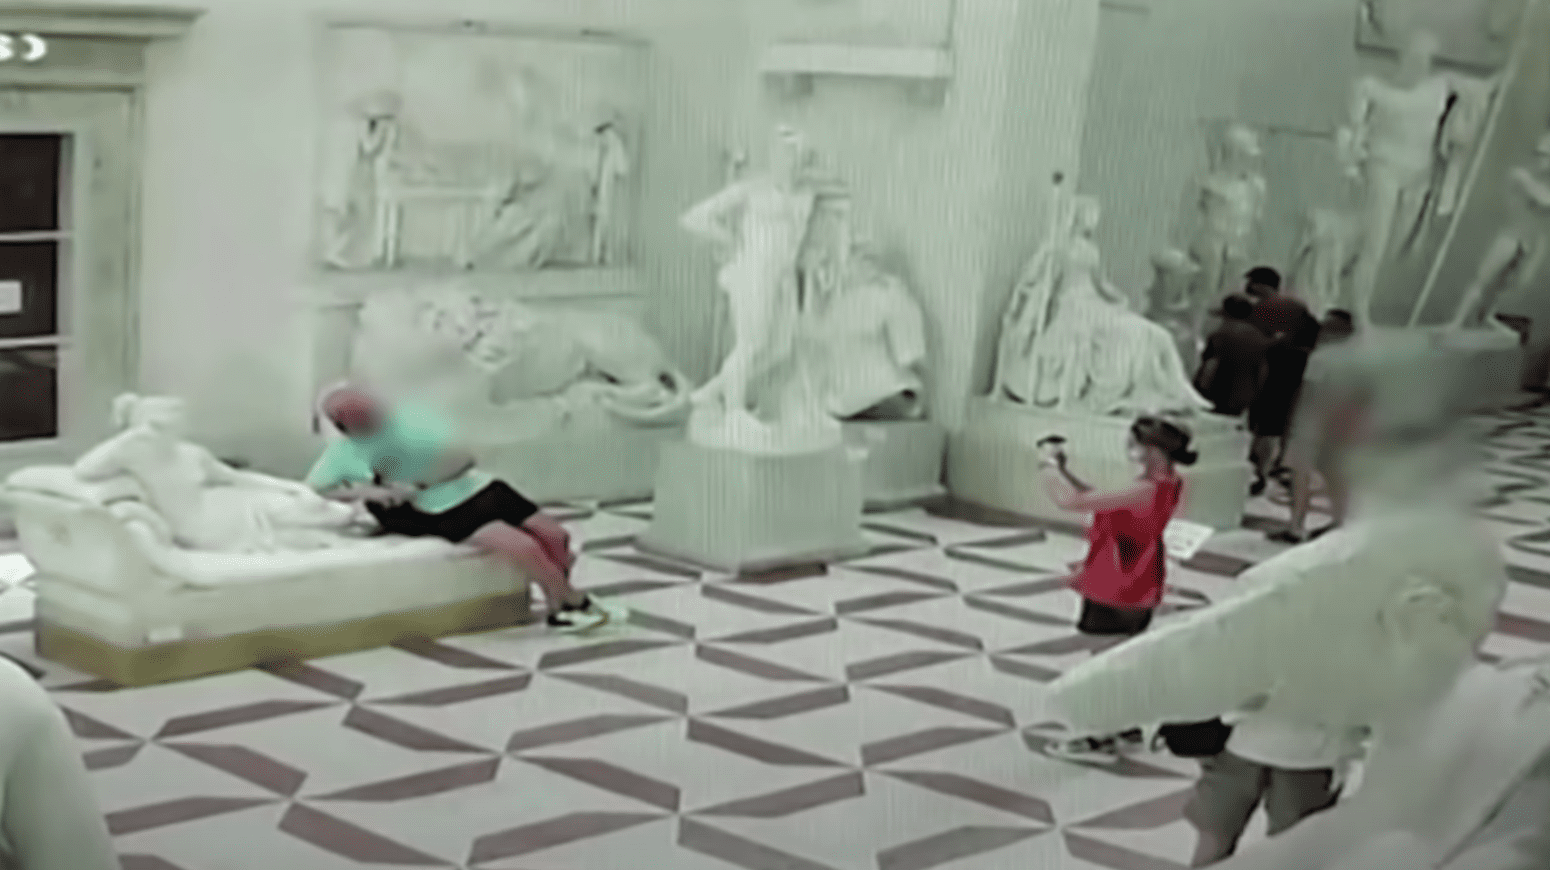 Should an Austrian Tourist Face Charges for Breaking This 200-Year-Old Sculpture?